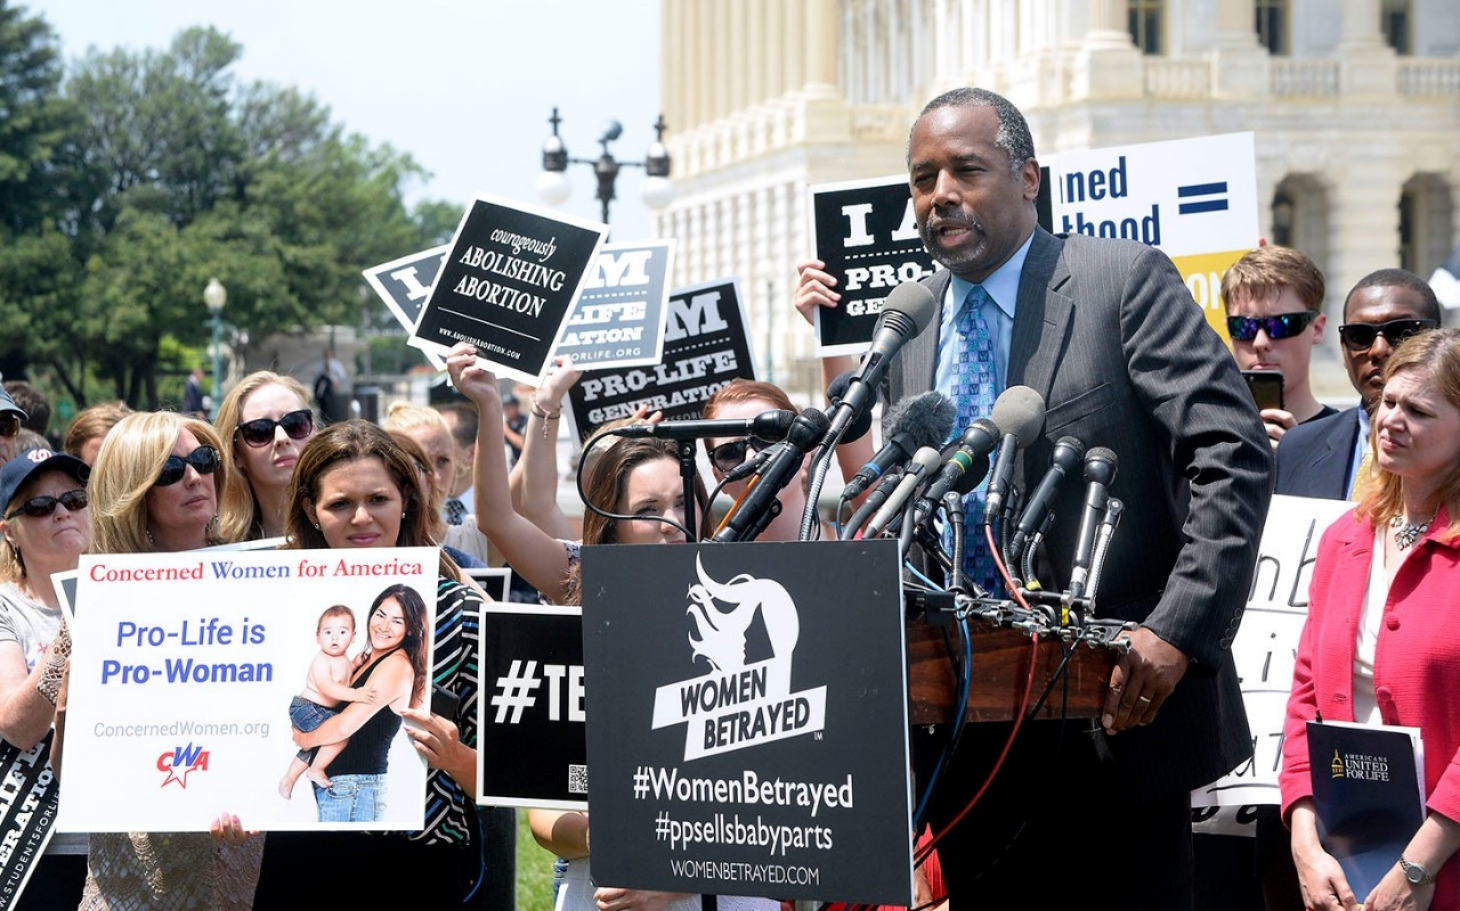 Ben Carson S Myths About Abortion And Black Women Al Jazeera America